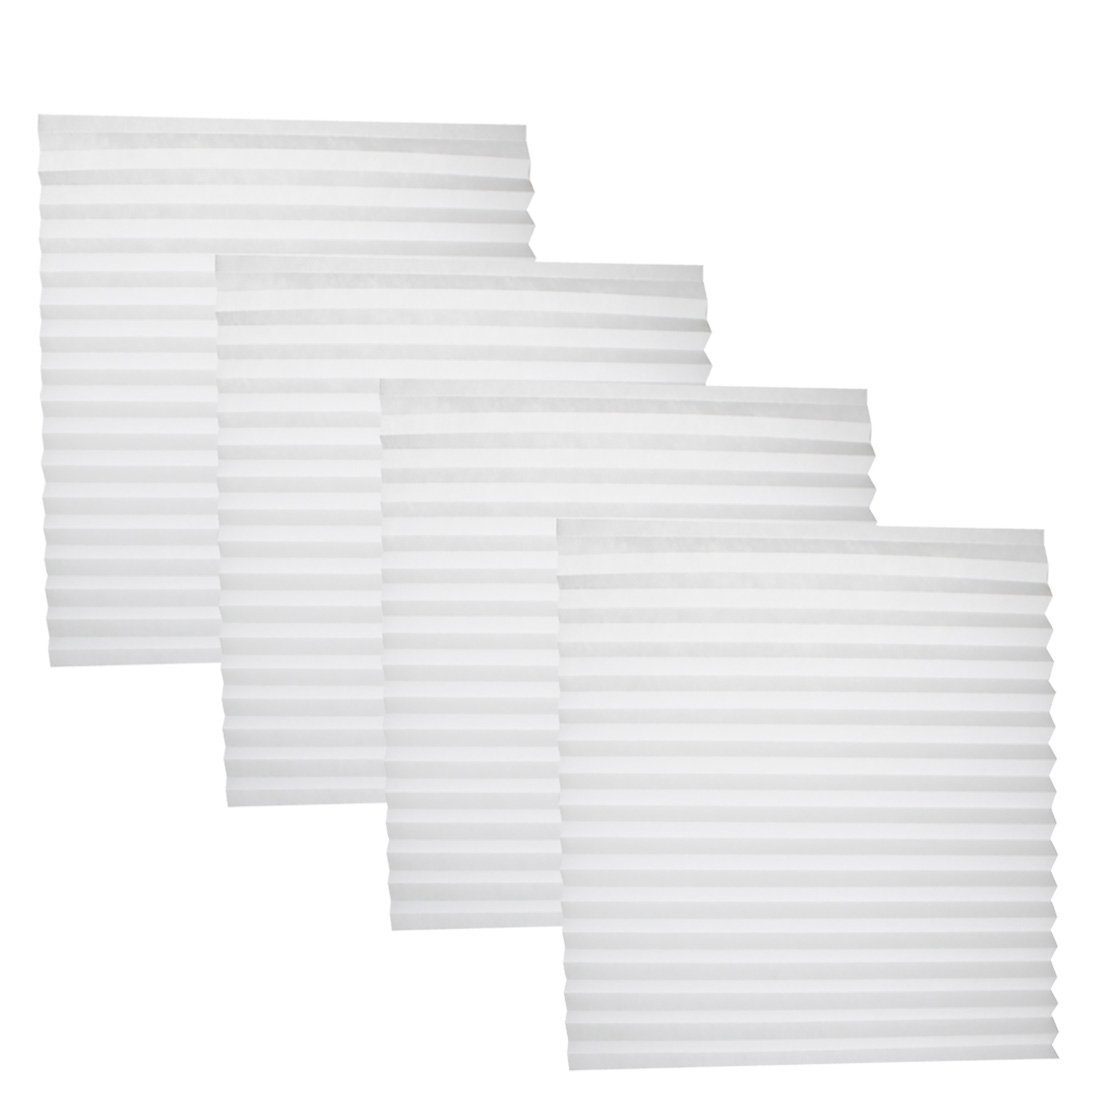 "JET-BOND JJ25 Pleated Paper Blind Shade Shutters White Free Stainless Steel Clips 74.8"" Long 35.4"" Wide (white, 4 PCS)"